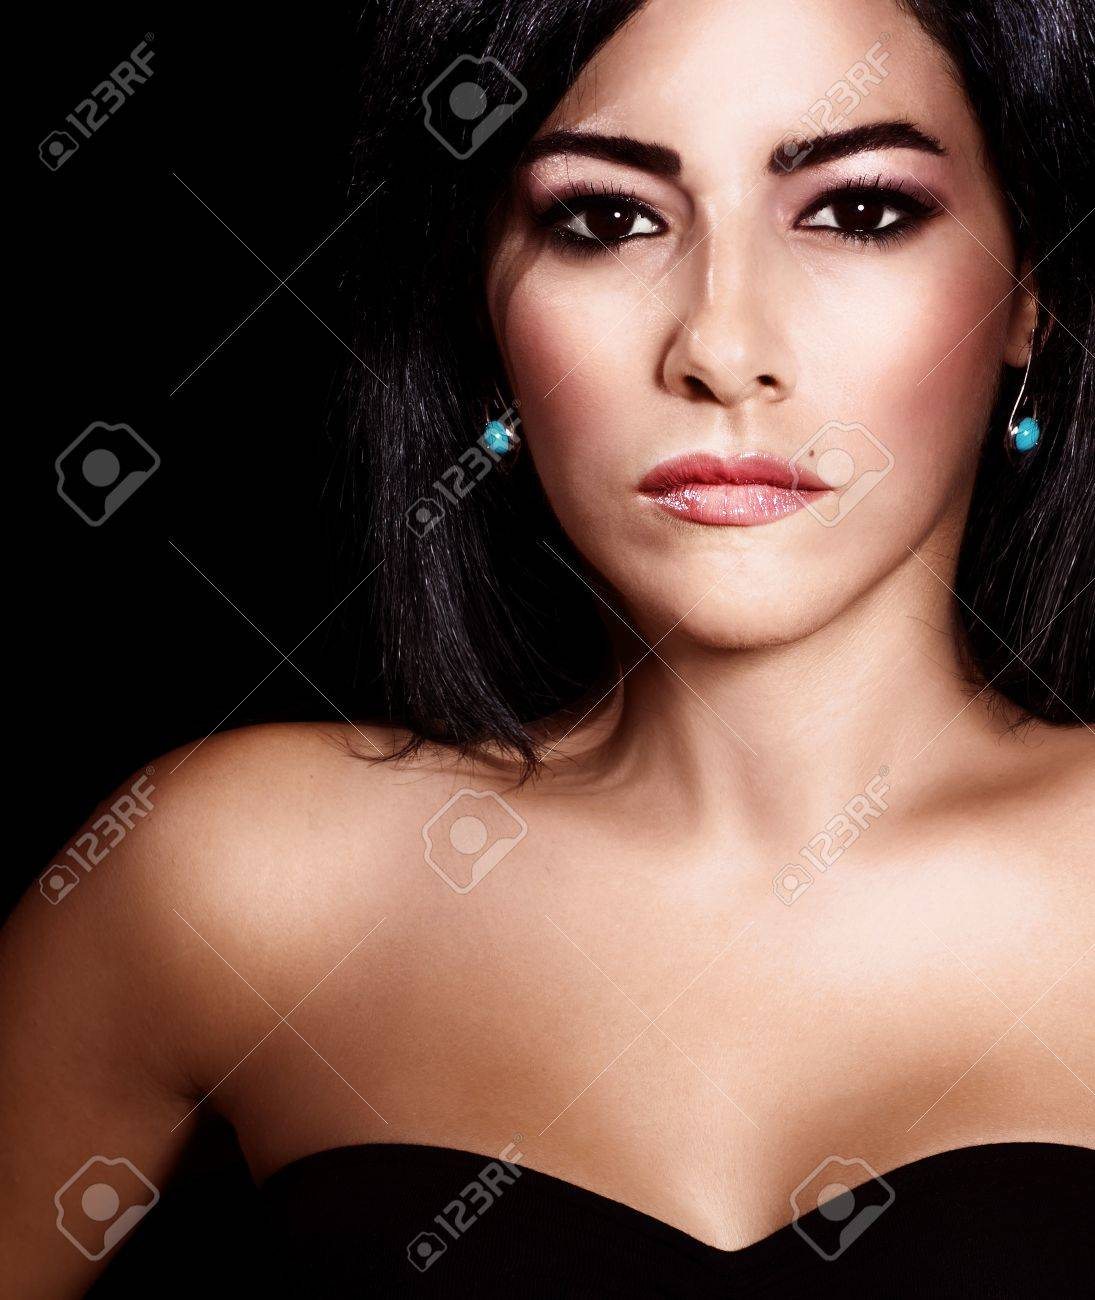 Picture of beautiful attractive girl, closeup portrait of elegant arabic woman with dark hair isolated on black background, female with perfect tanned skin, luxury and beauty concept Stock Photo - 15238281